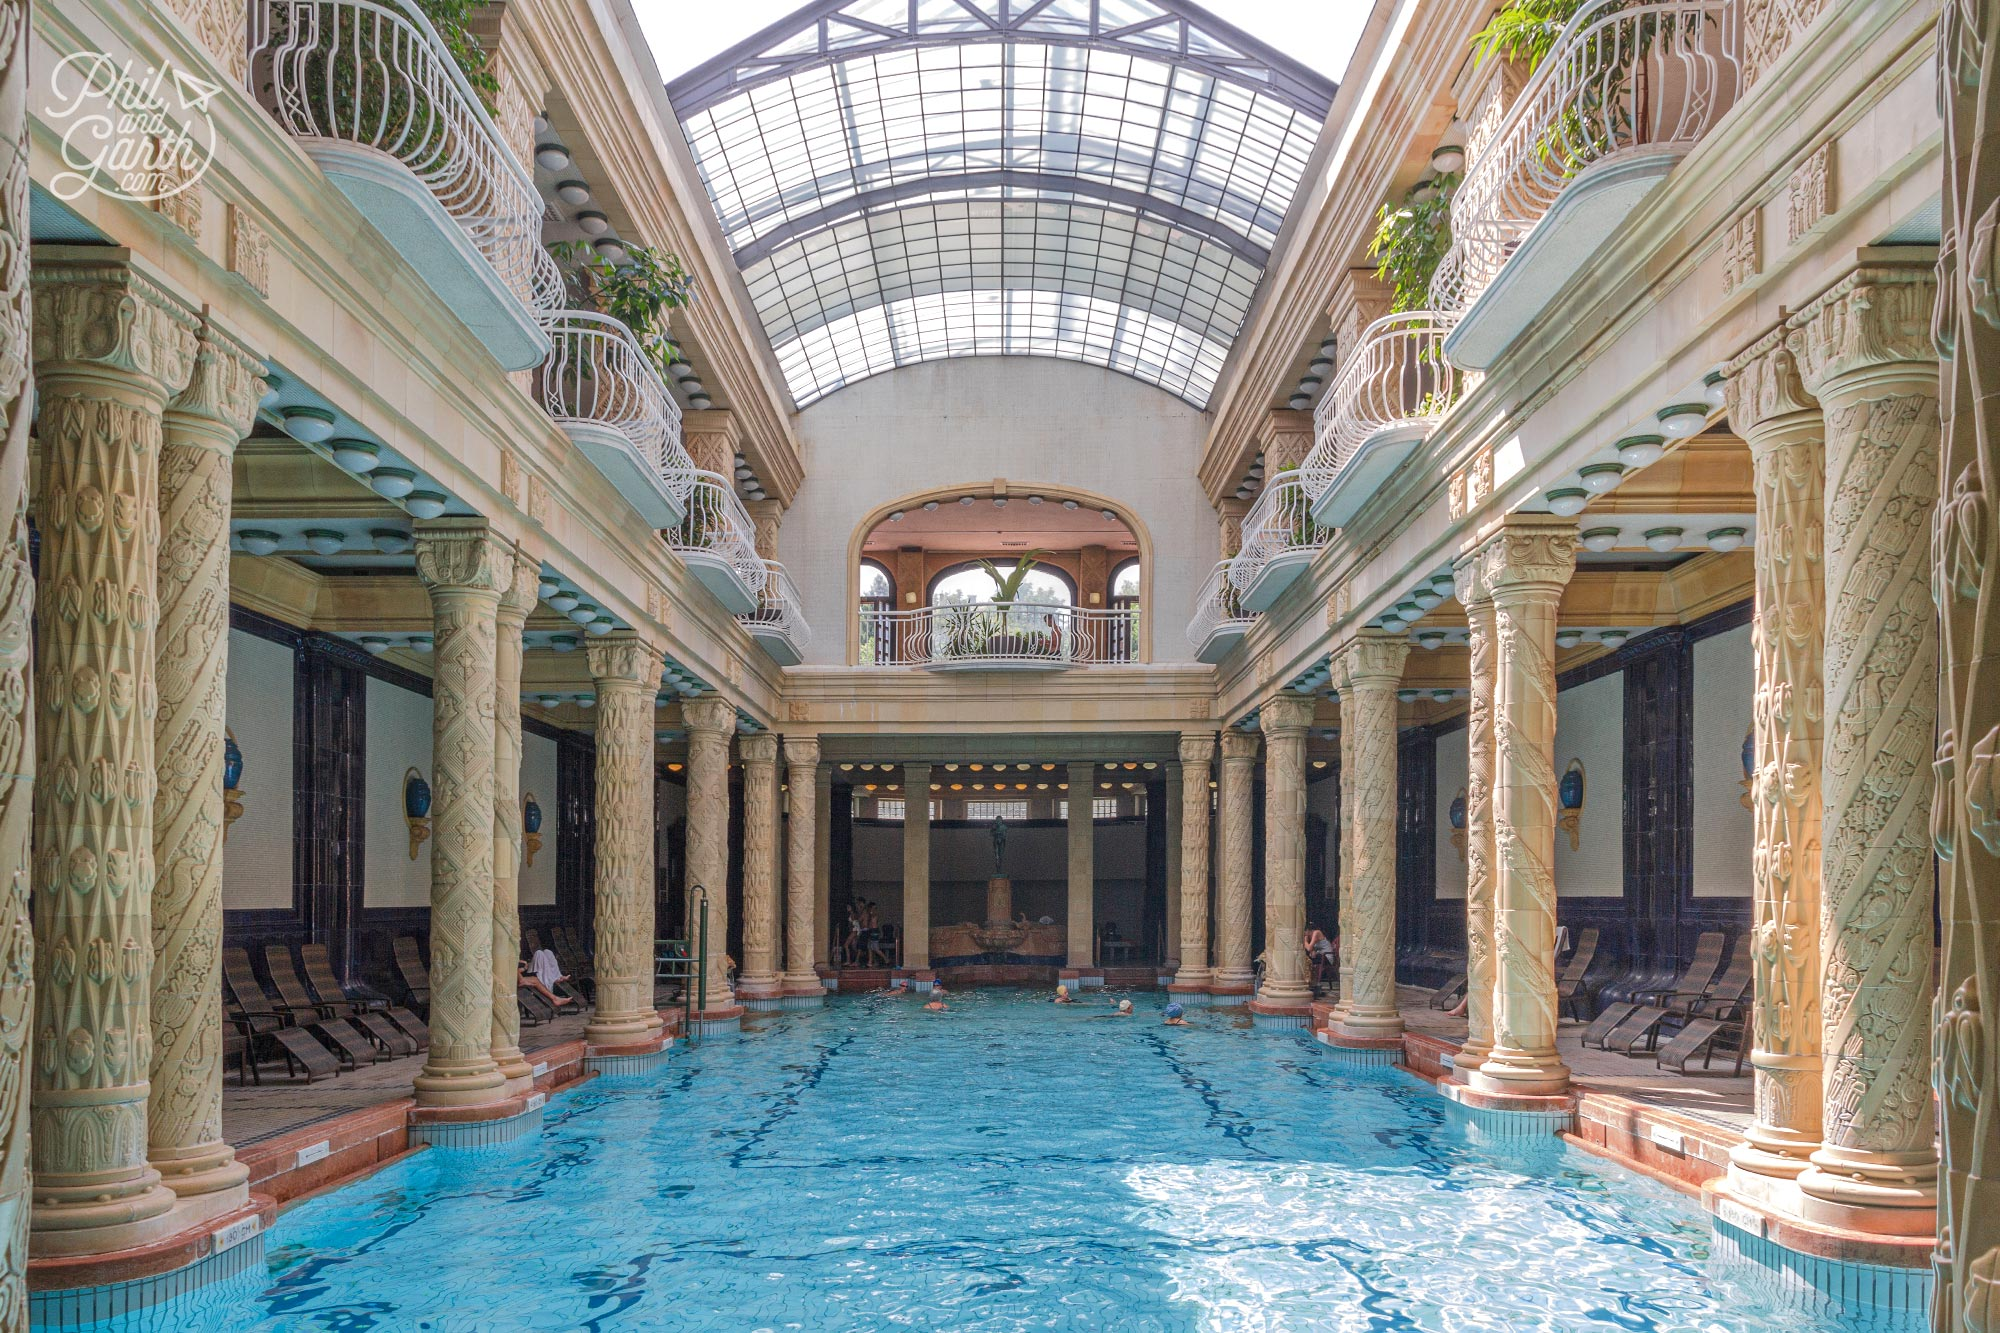 The elegant indoor swimming pool at the Gellért Spa